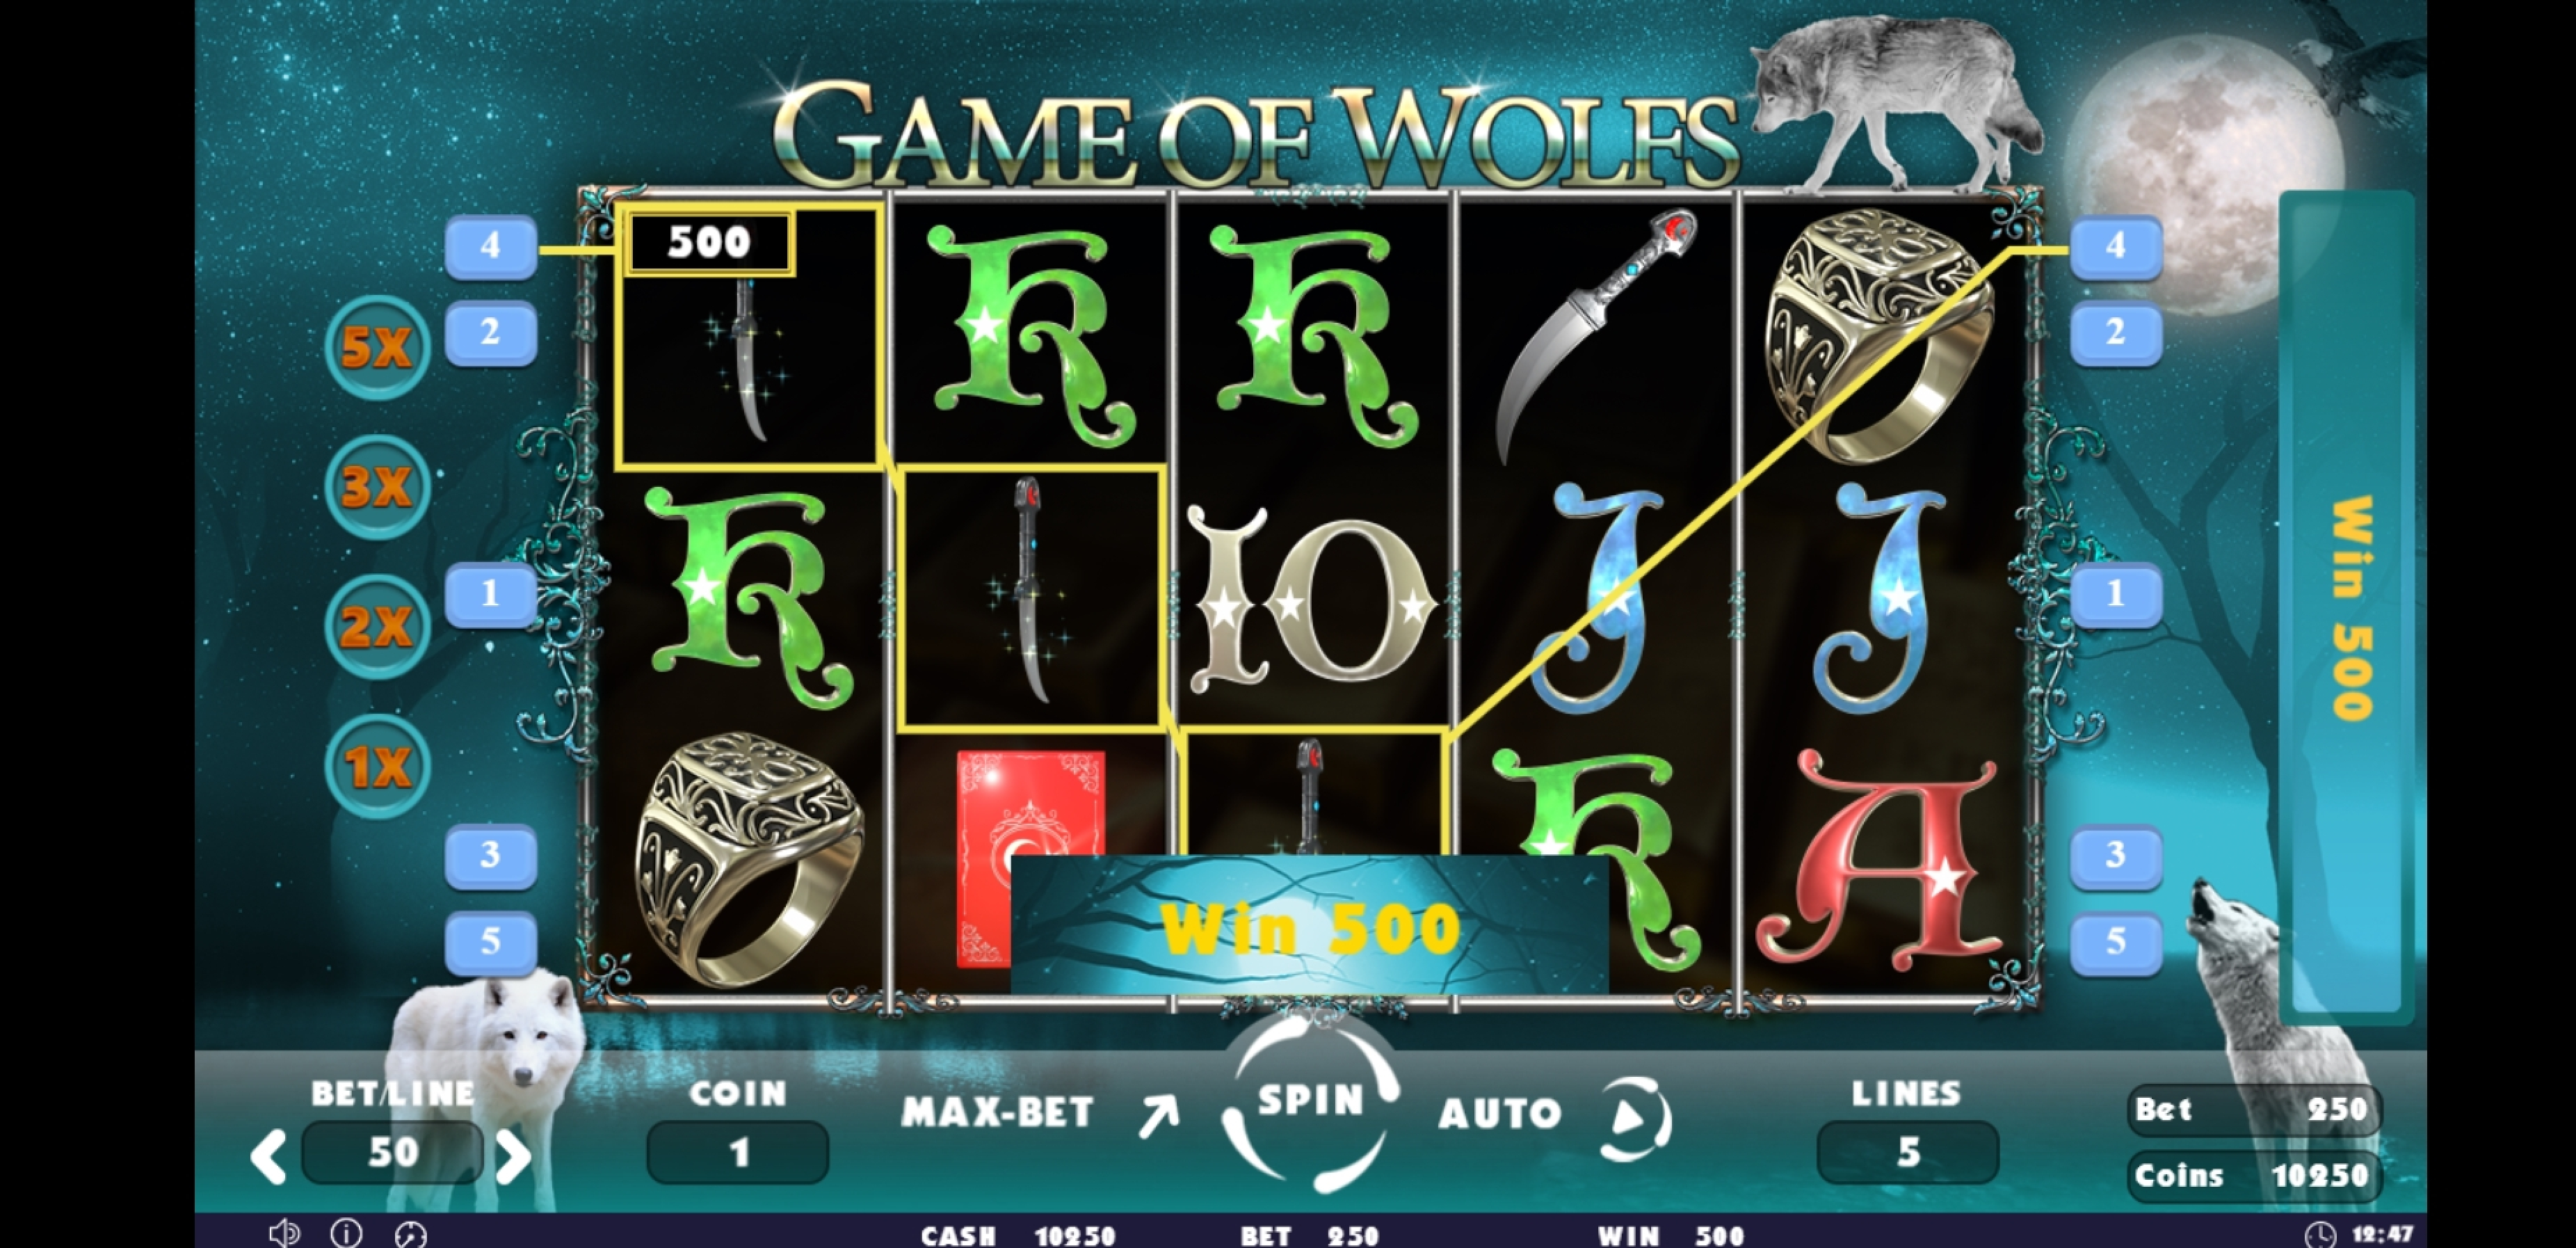 Win Money in Game of Wolfs Free Slot Game by Others